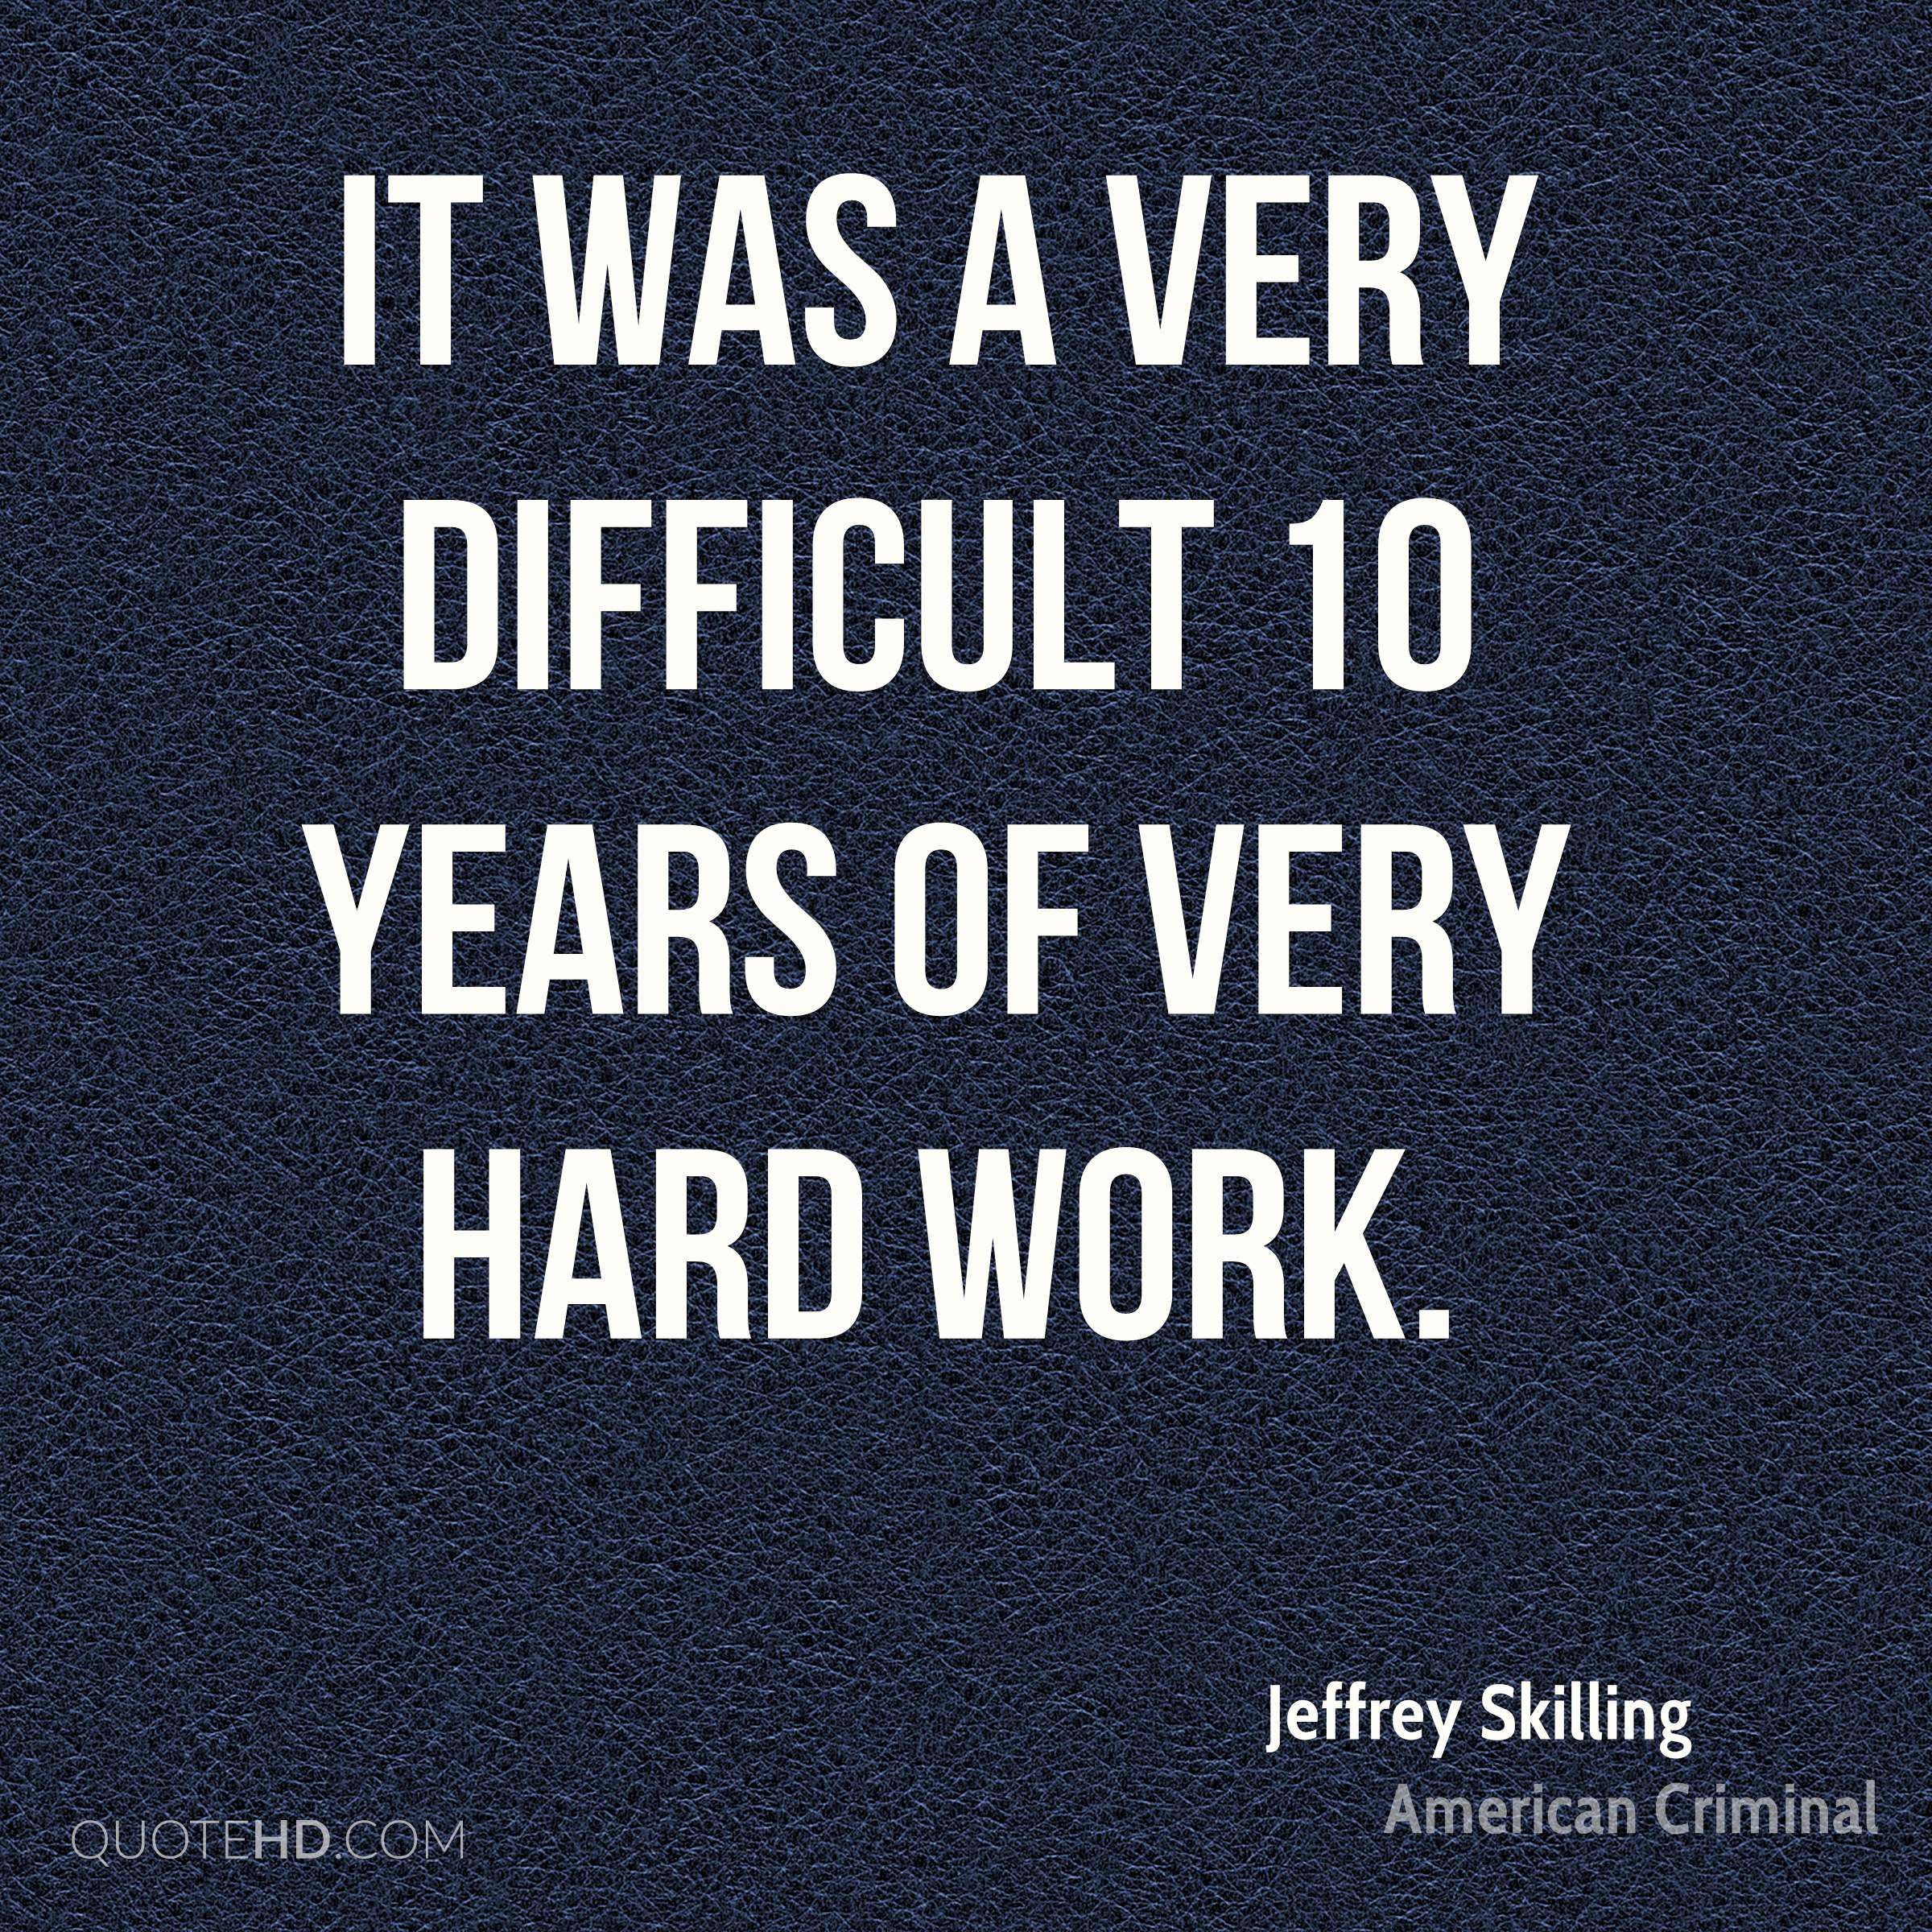 It was a very difficult 10 years of very hard work.